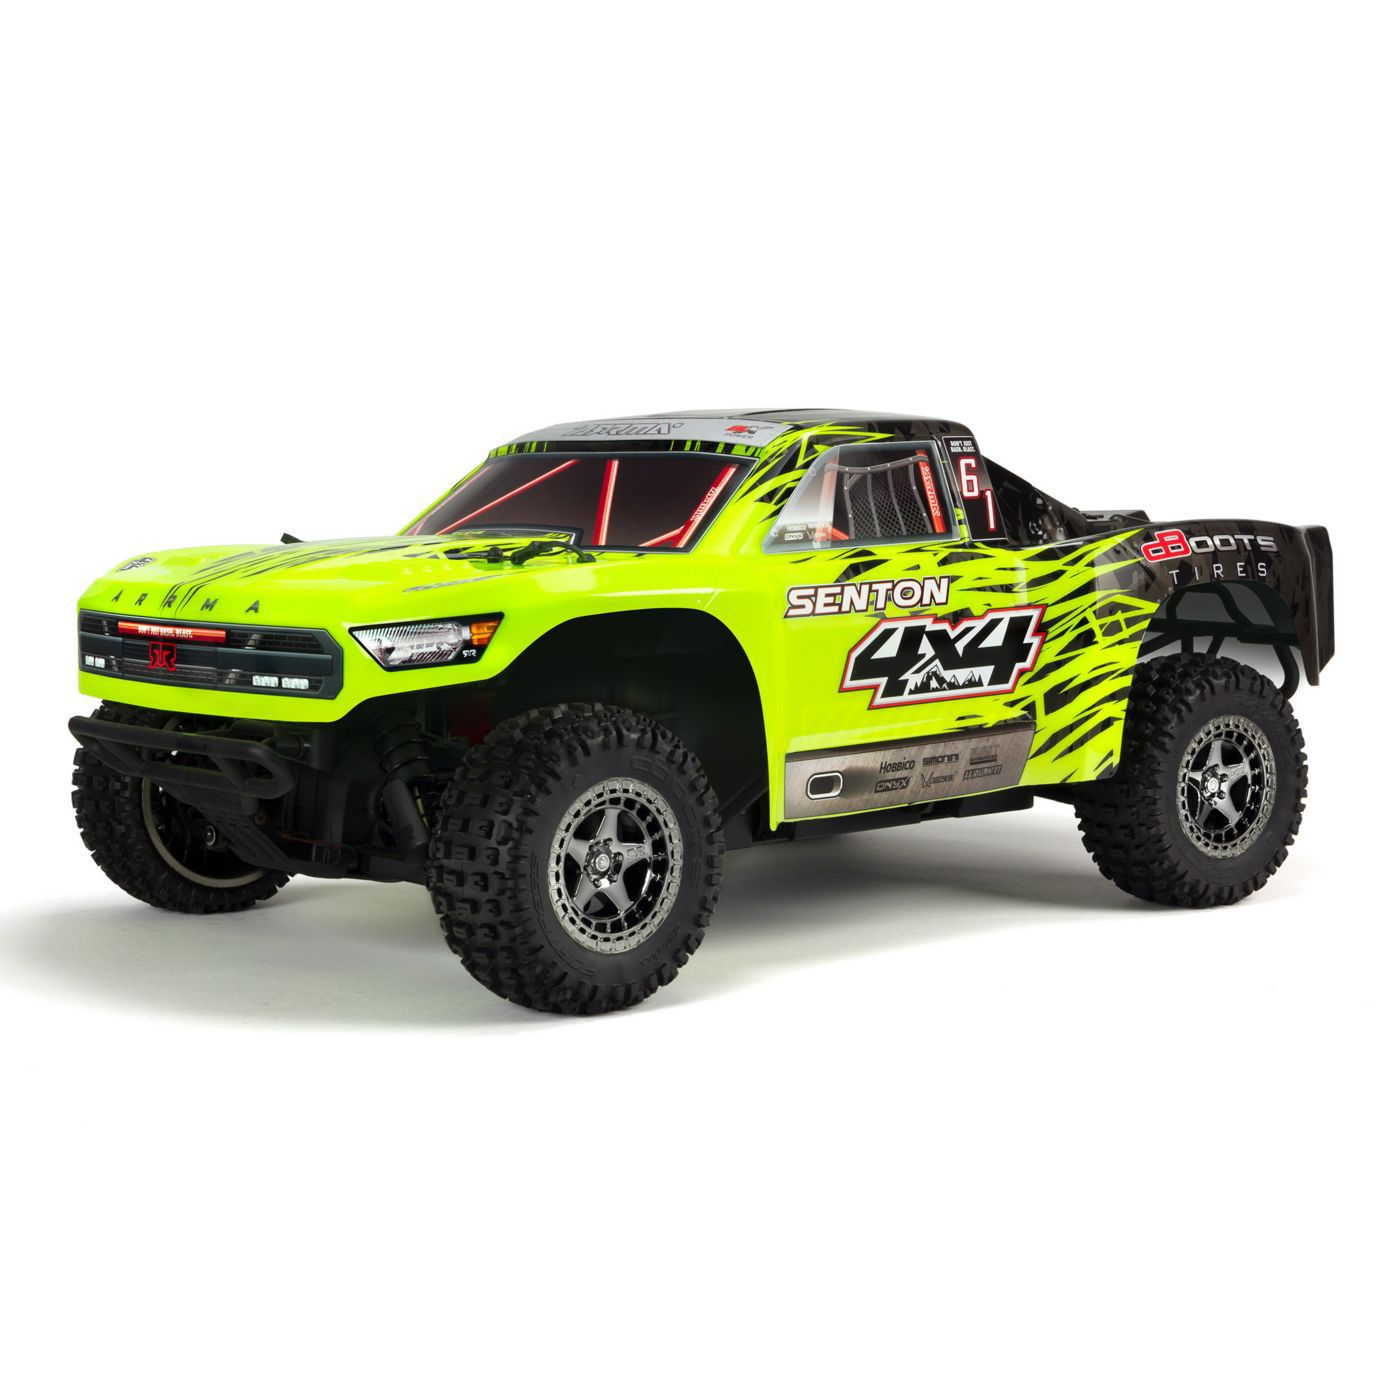 ARRMA 1/10 SENTON 3S BLX 4WD Brushless Short Course Truck with Spektrum RTR, Green/Black